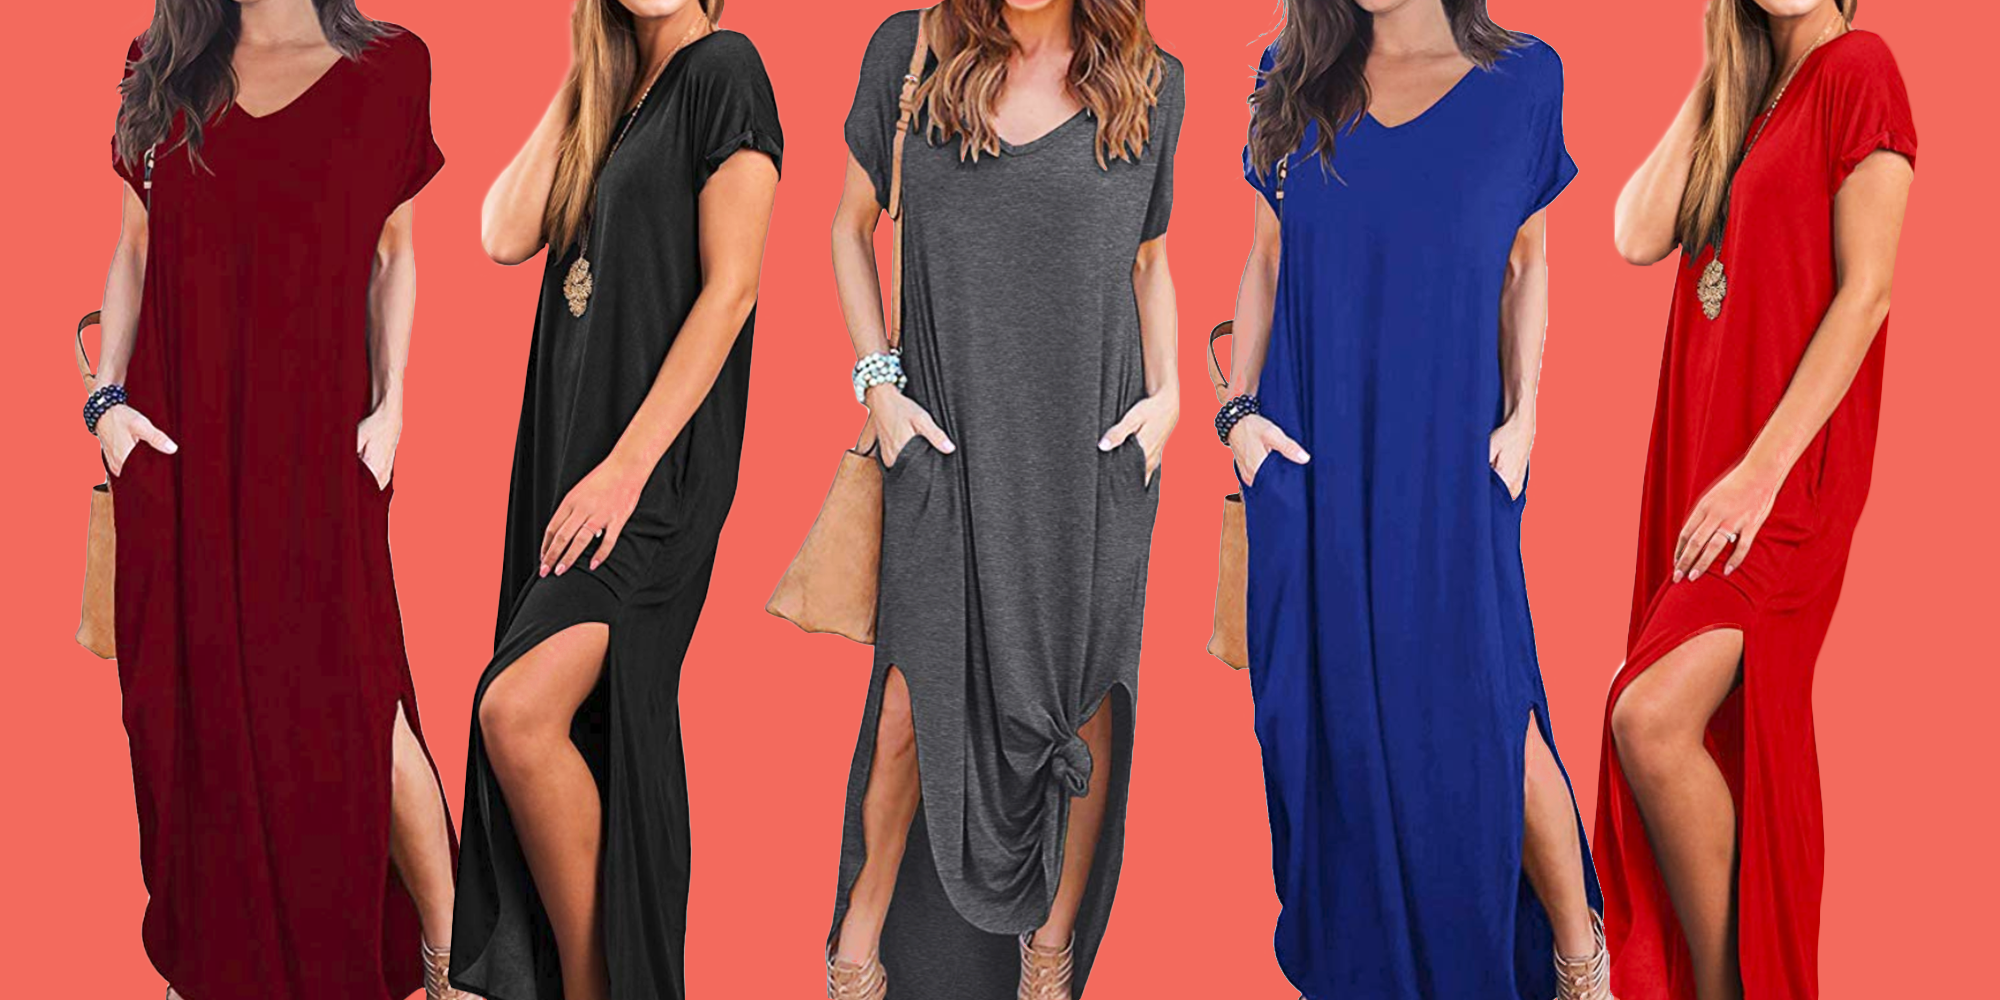 I Own This $24 Amazon Dress in 4 Colors (and I Want More)